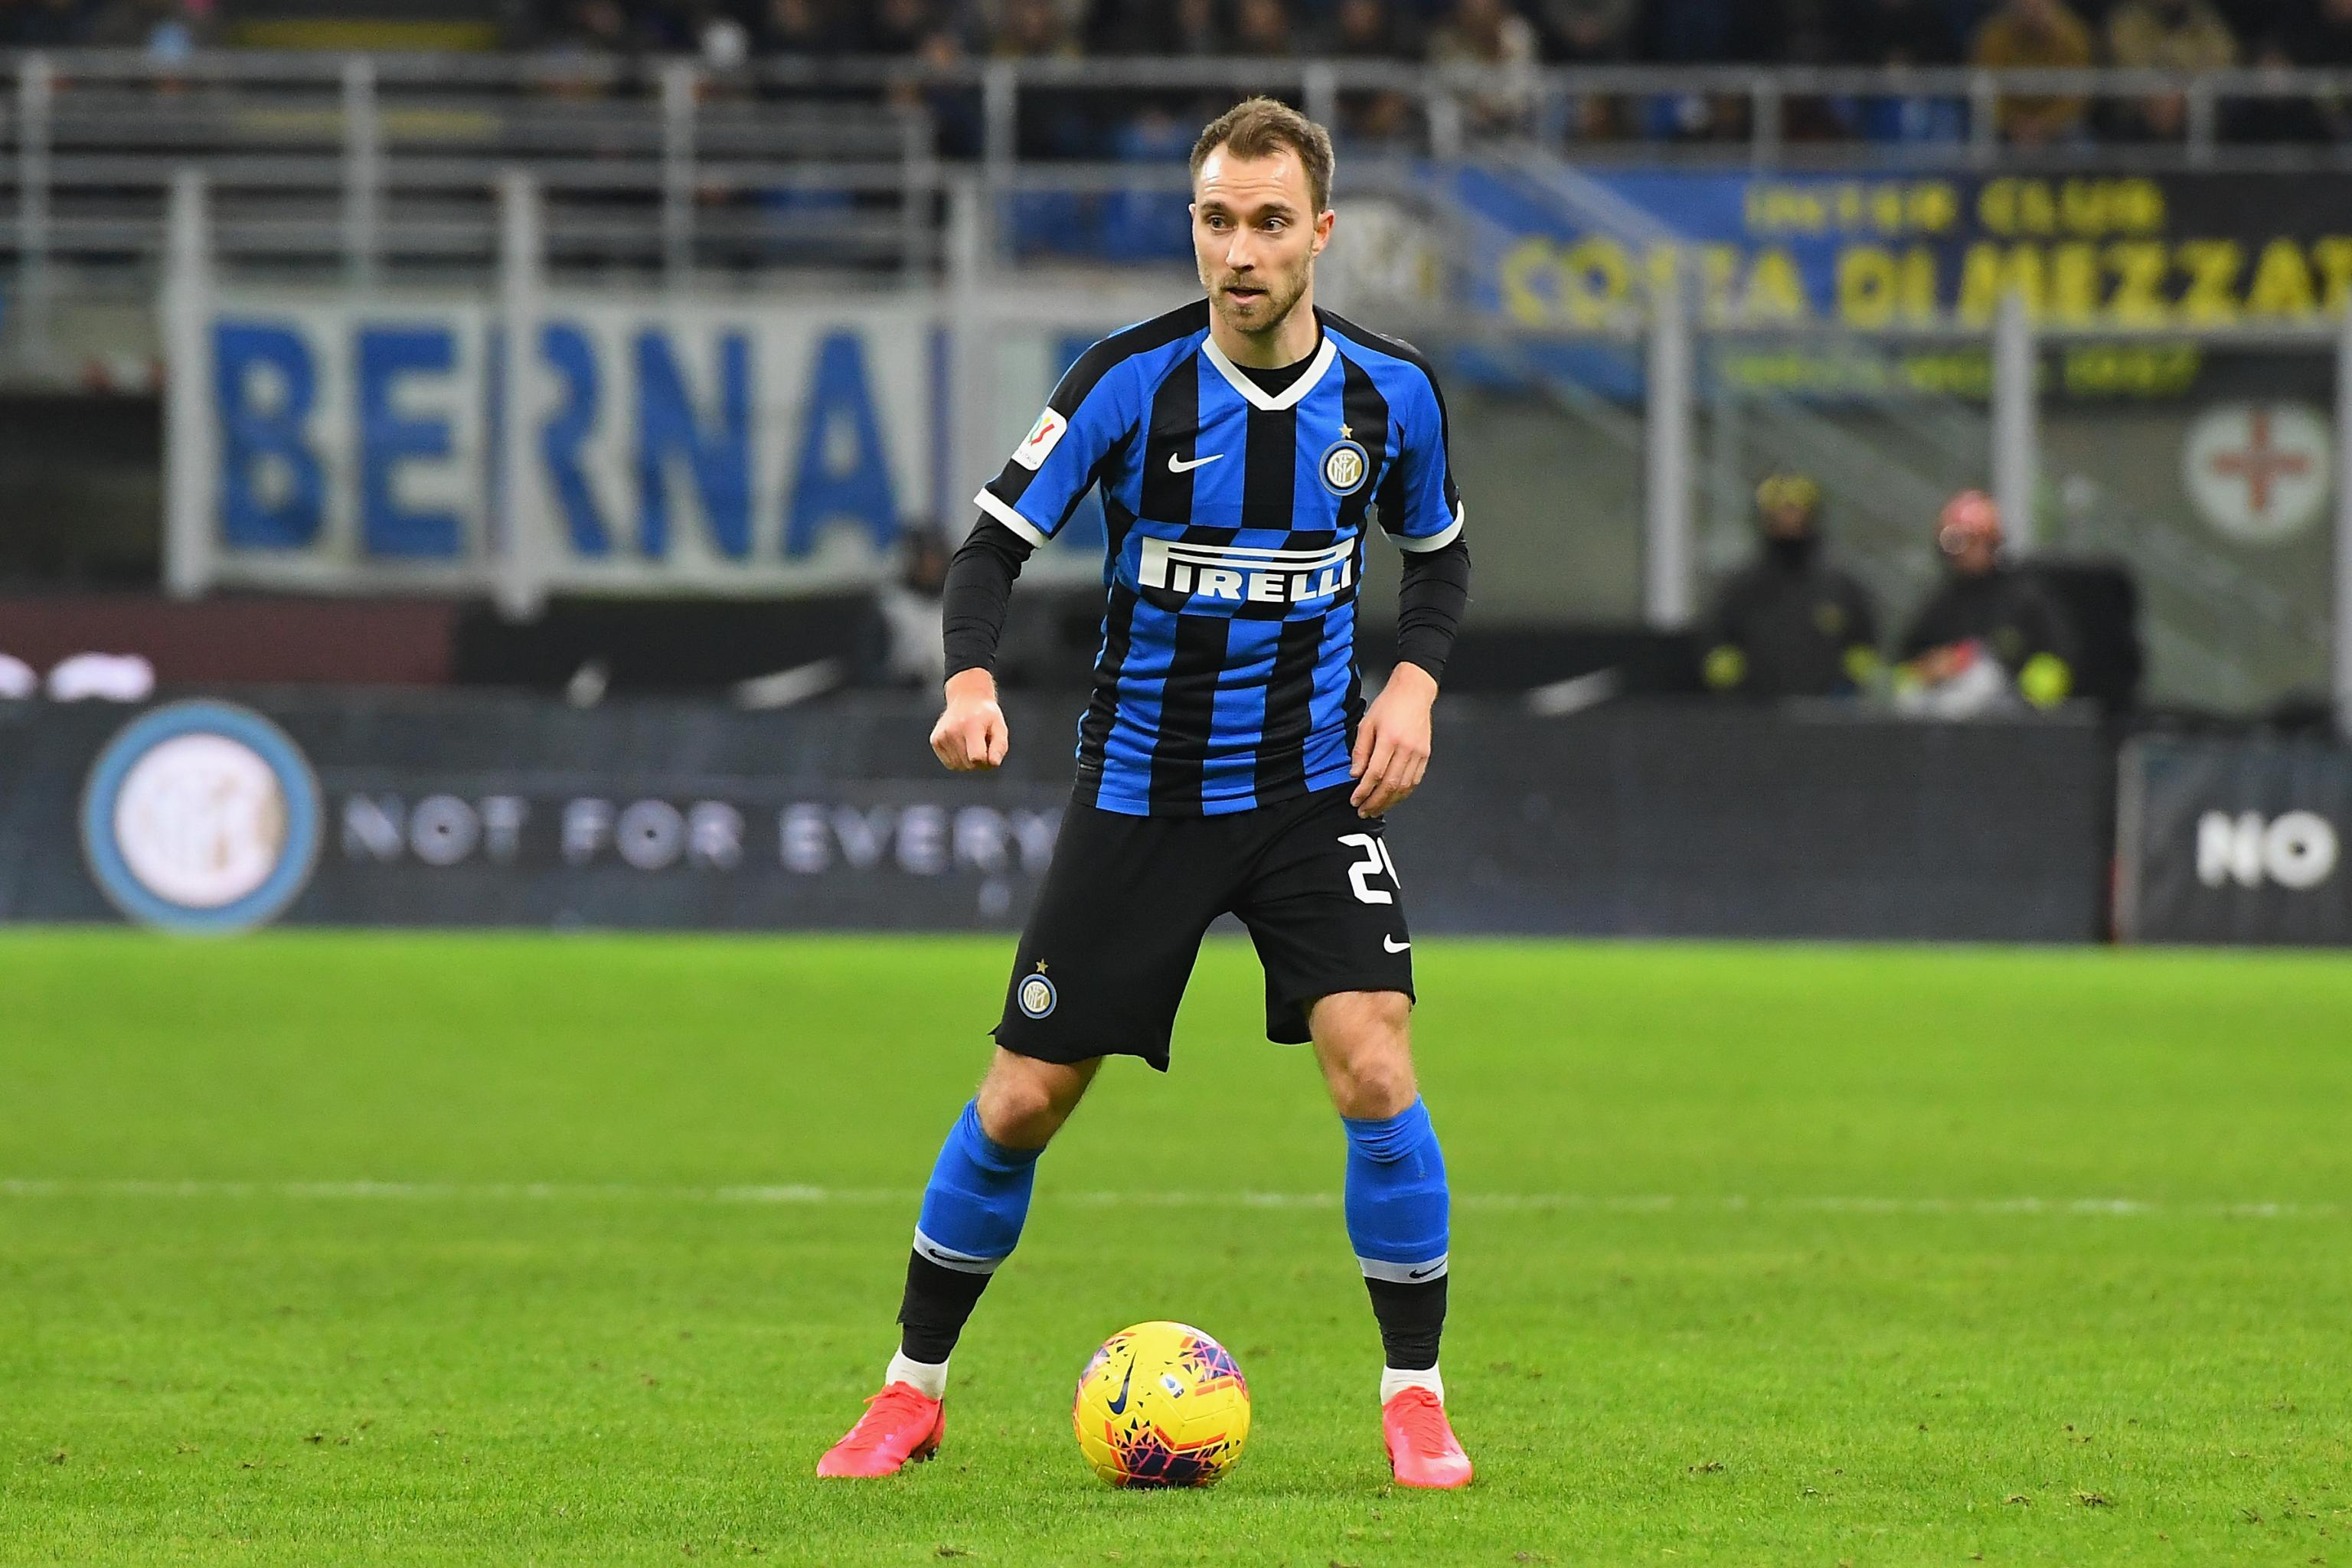 Antonio Conte Christian Eriksen S Inter Milan Debut Came Earlier Than Planned Bleacher Report Latest News Videos And Highlights